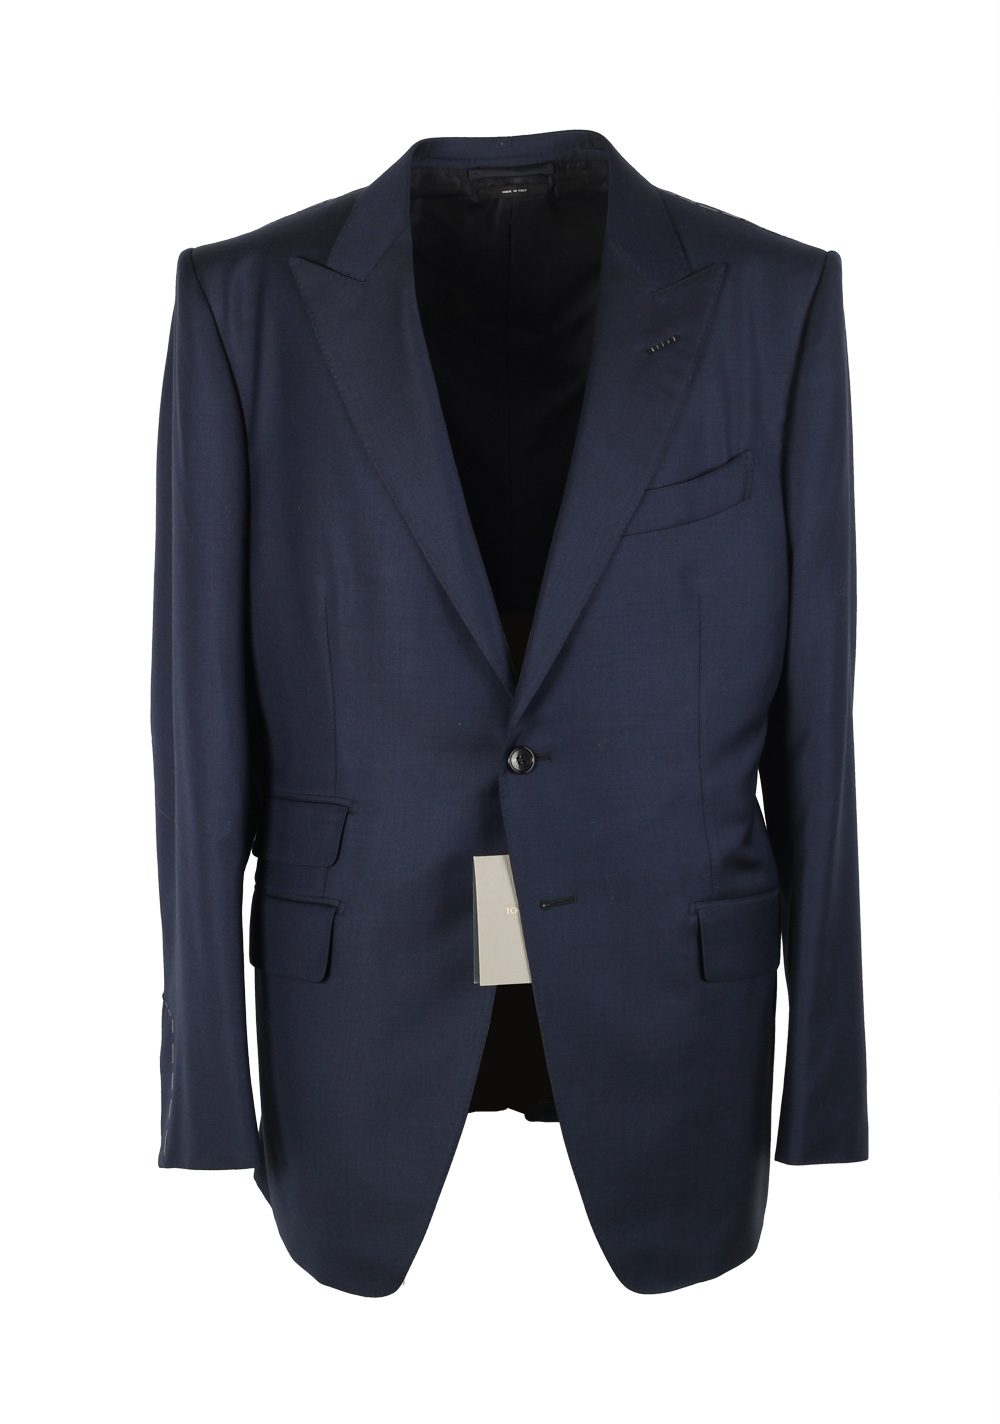 Tom Ford O Connor Navy Suit Size 54 44r U S Wool Fit Y